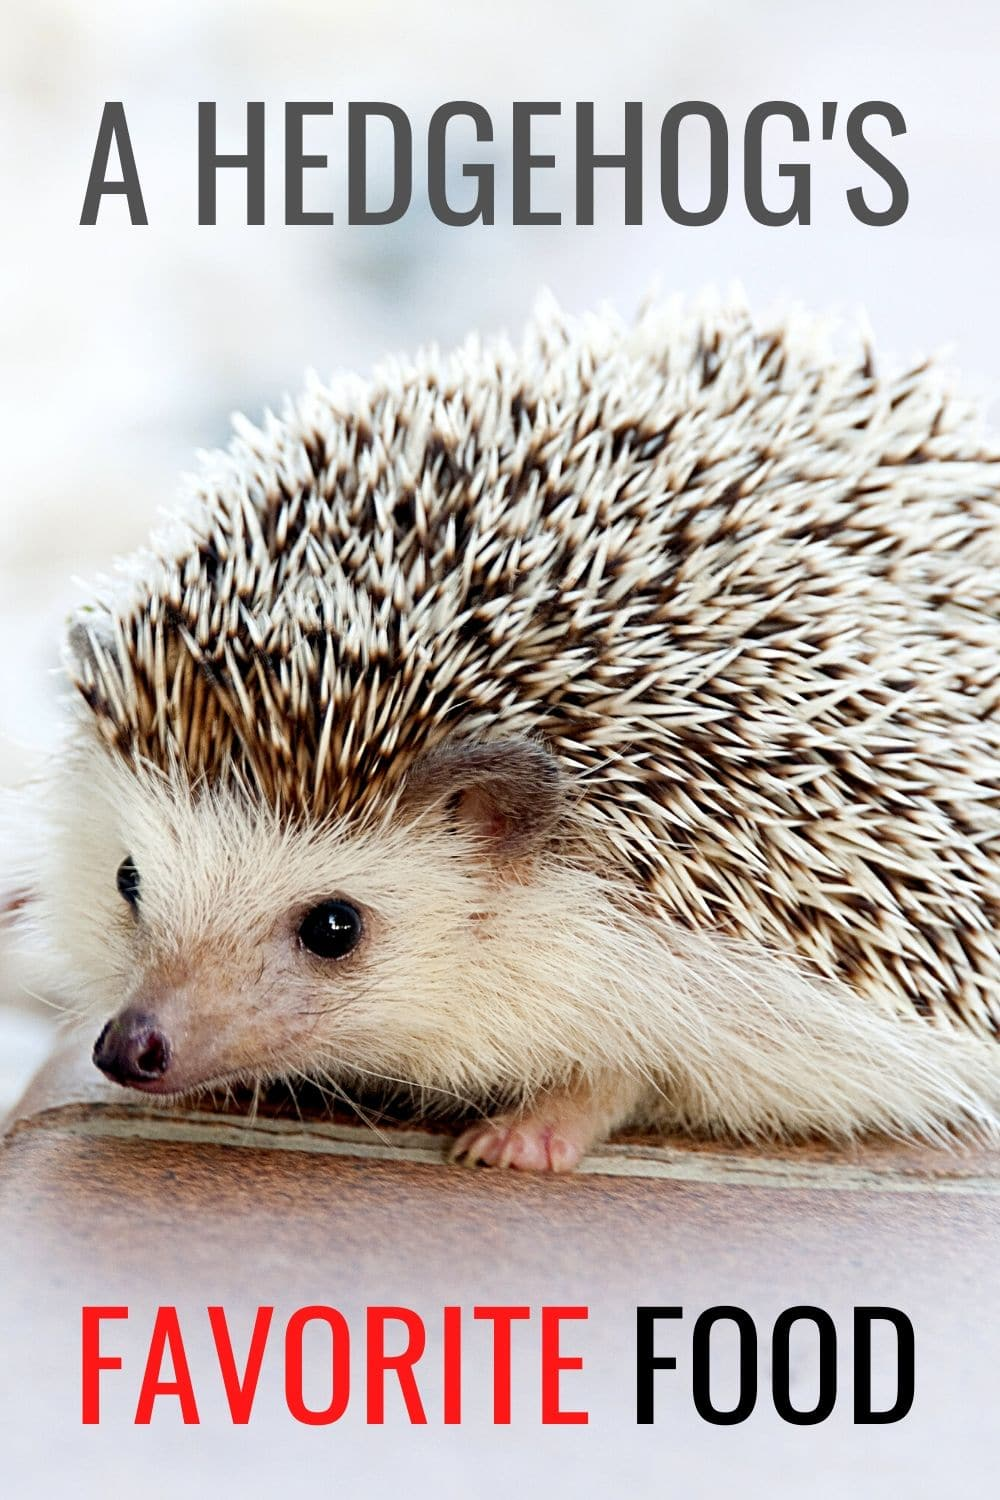 What Do Hedgehogs Eat?